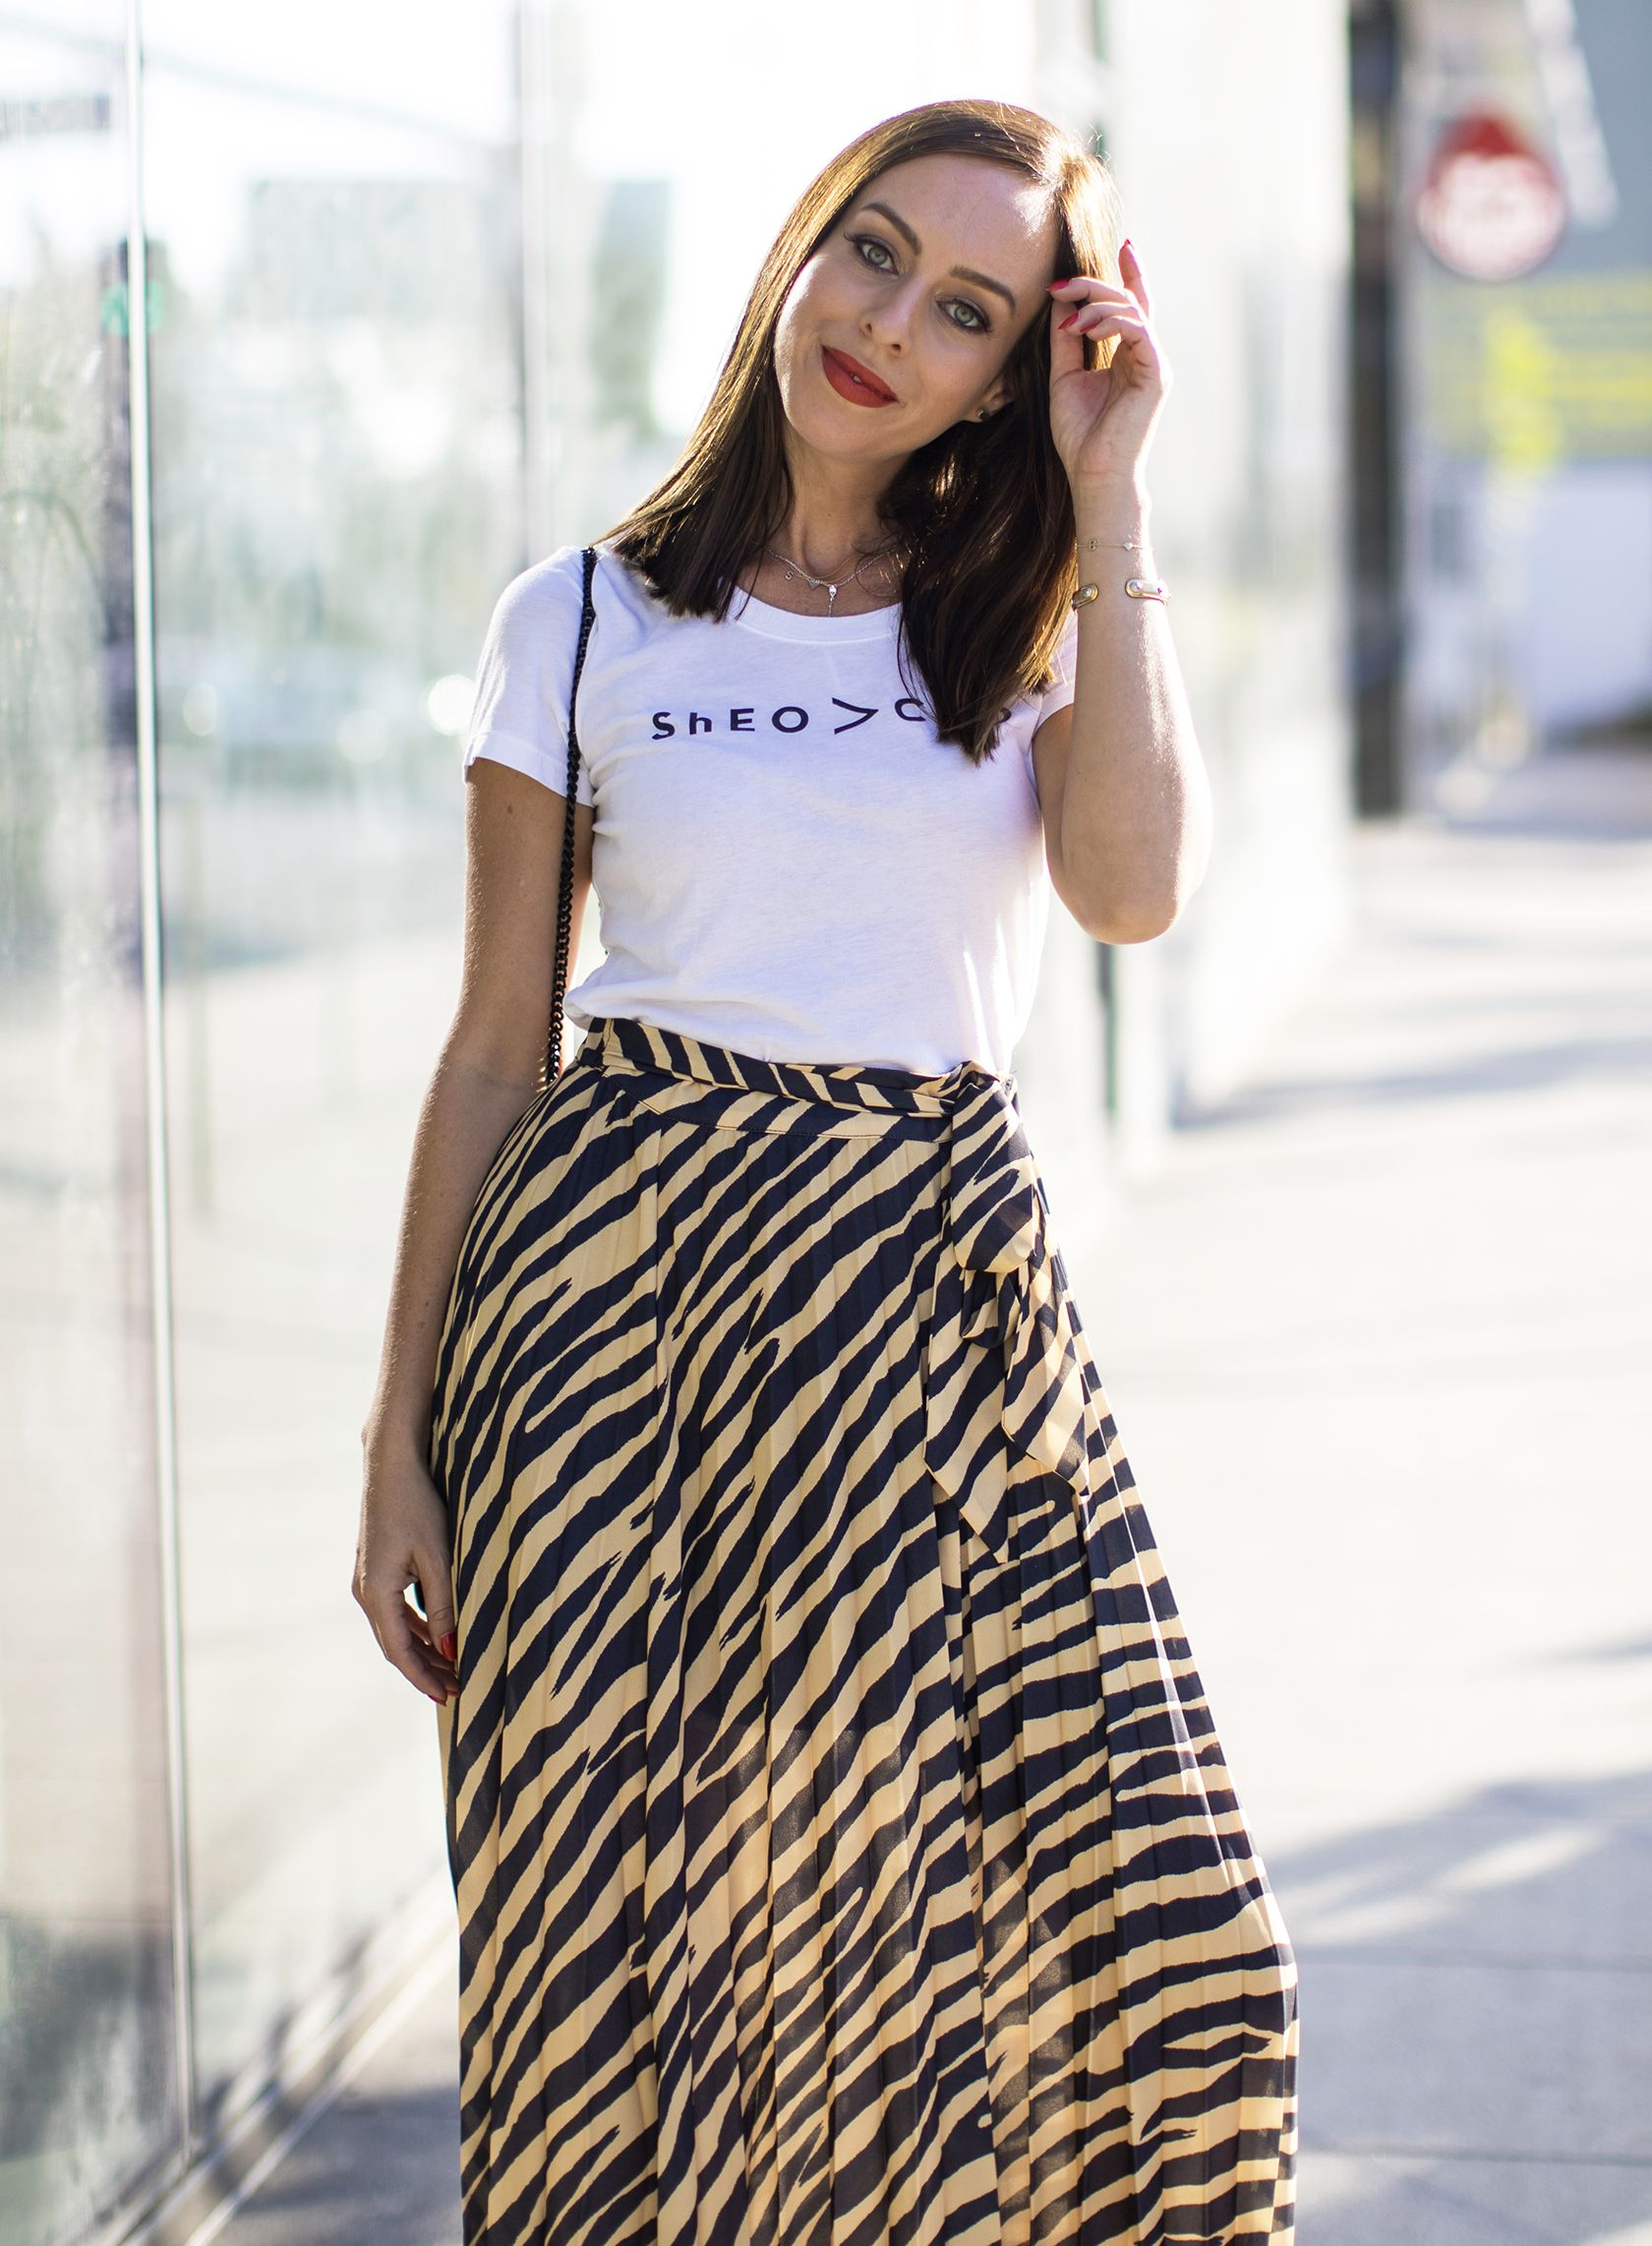 4d5c0f585b4e Sydne Style wears milly ceo tee #zebra #skirts #tees #tshirt #graphictee